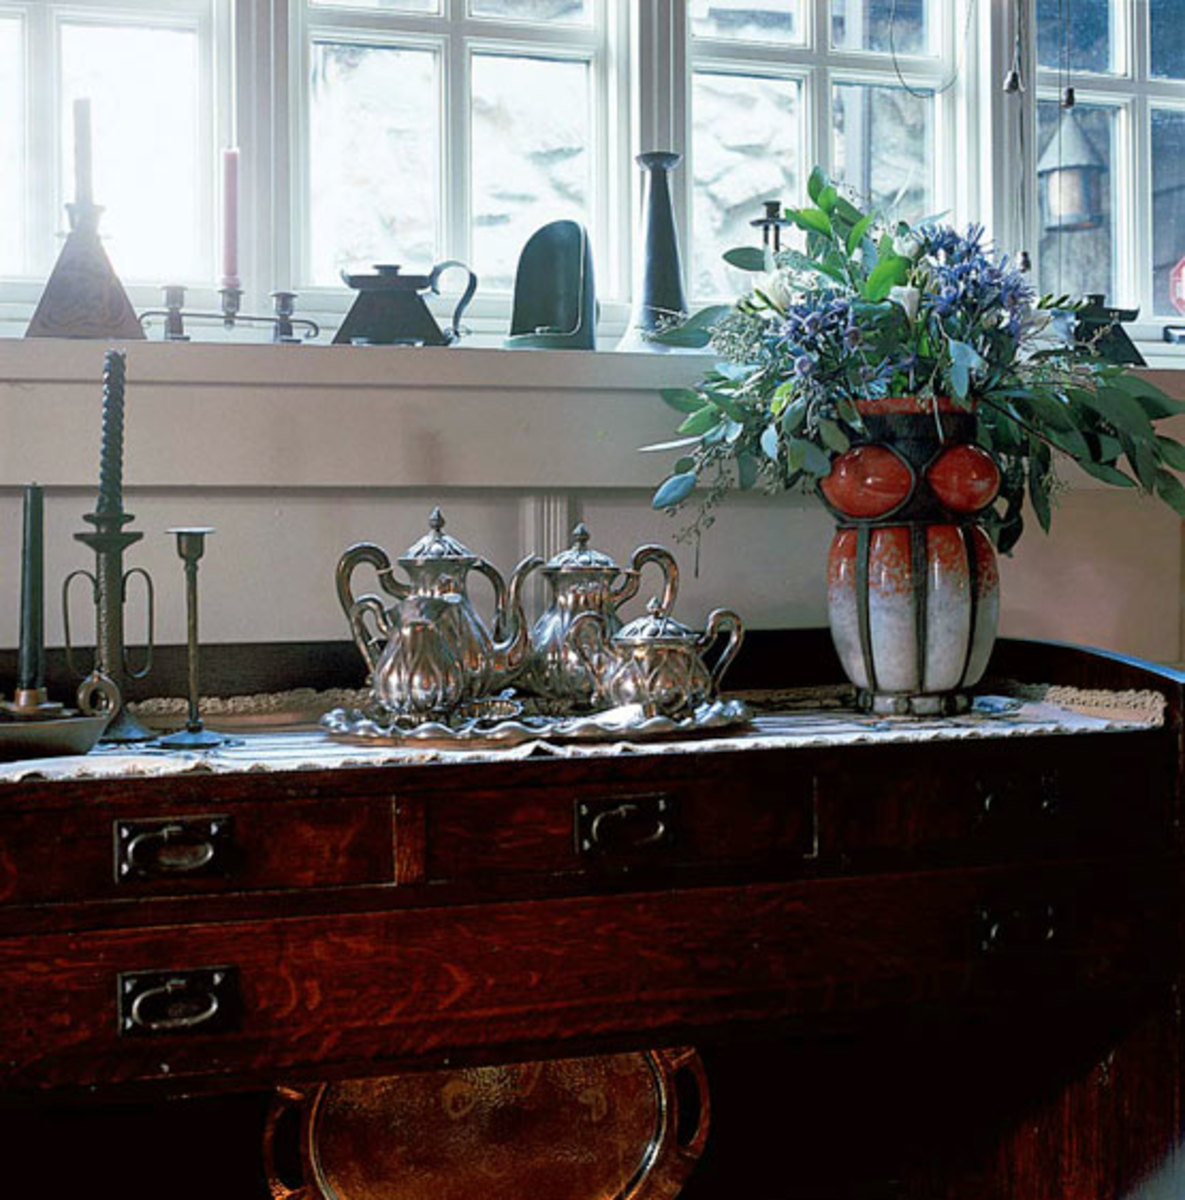 Part of the collection of single candlesticks sits on the sill; the silver service is a family heirloom.